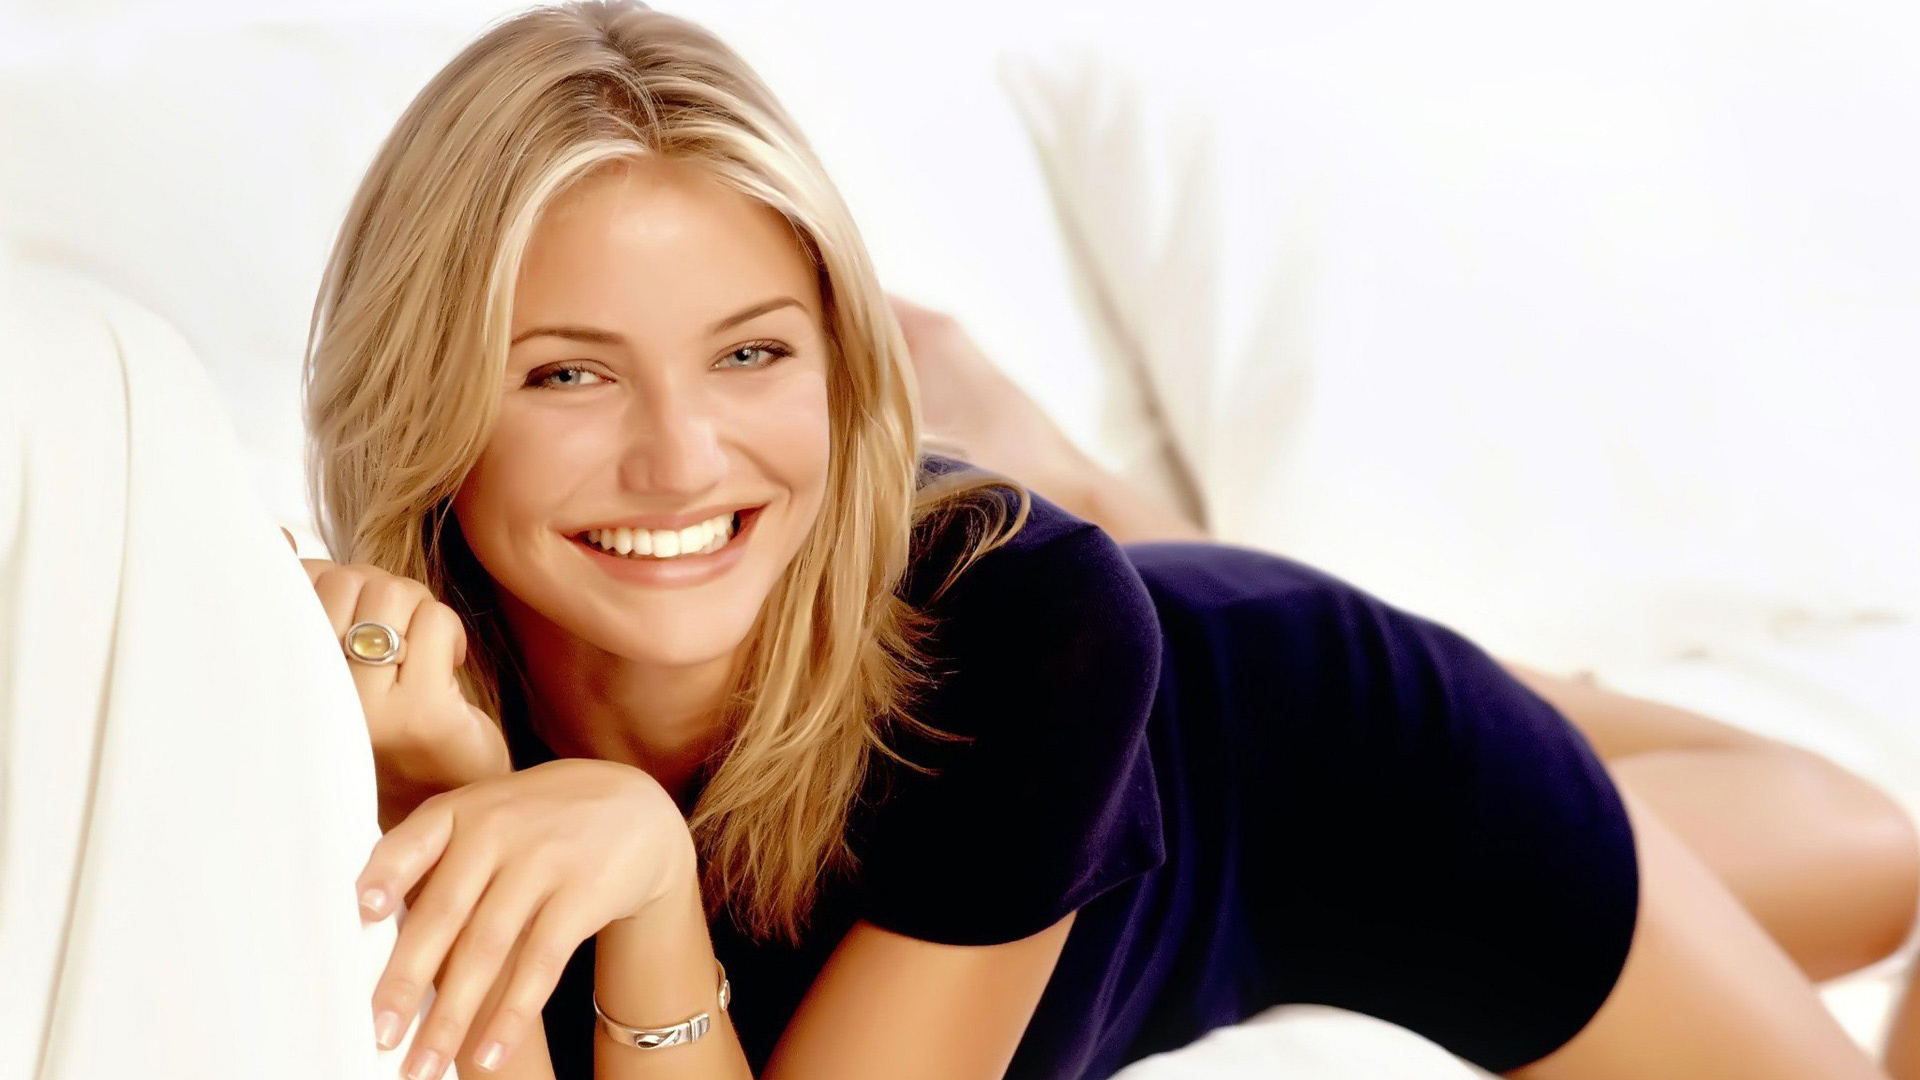 cameron diaz - photo #32